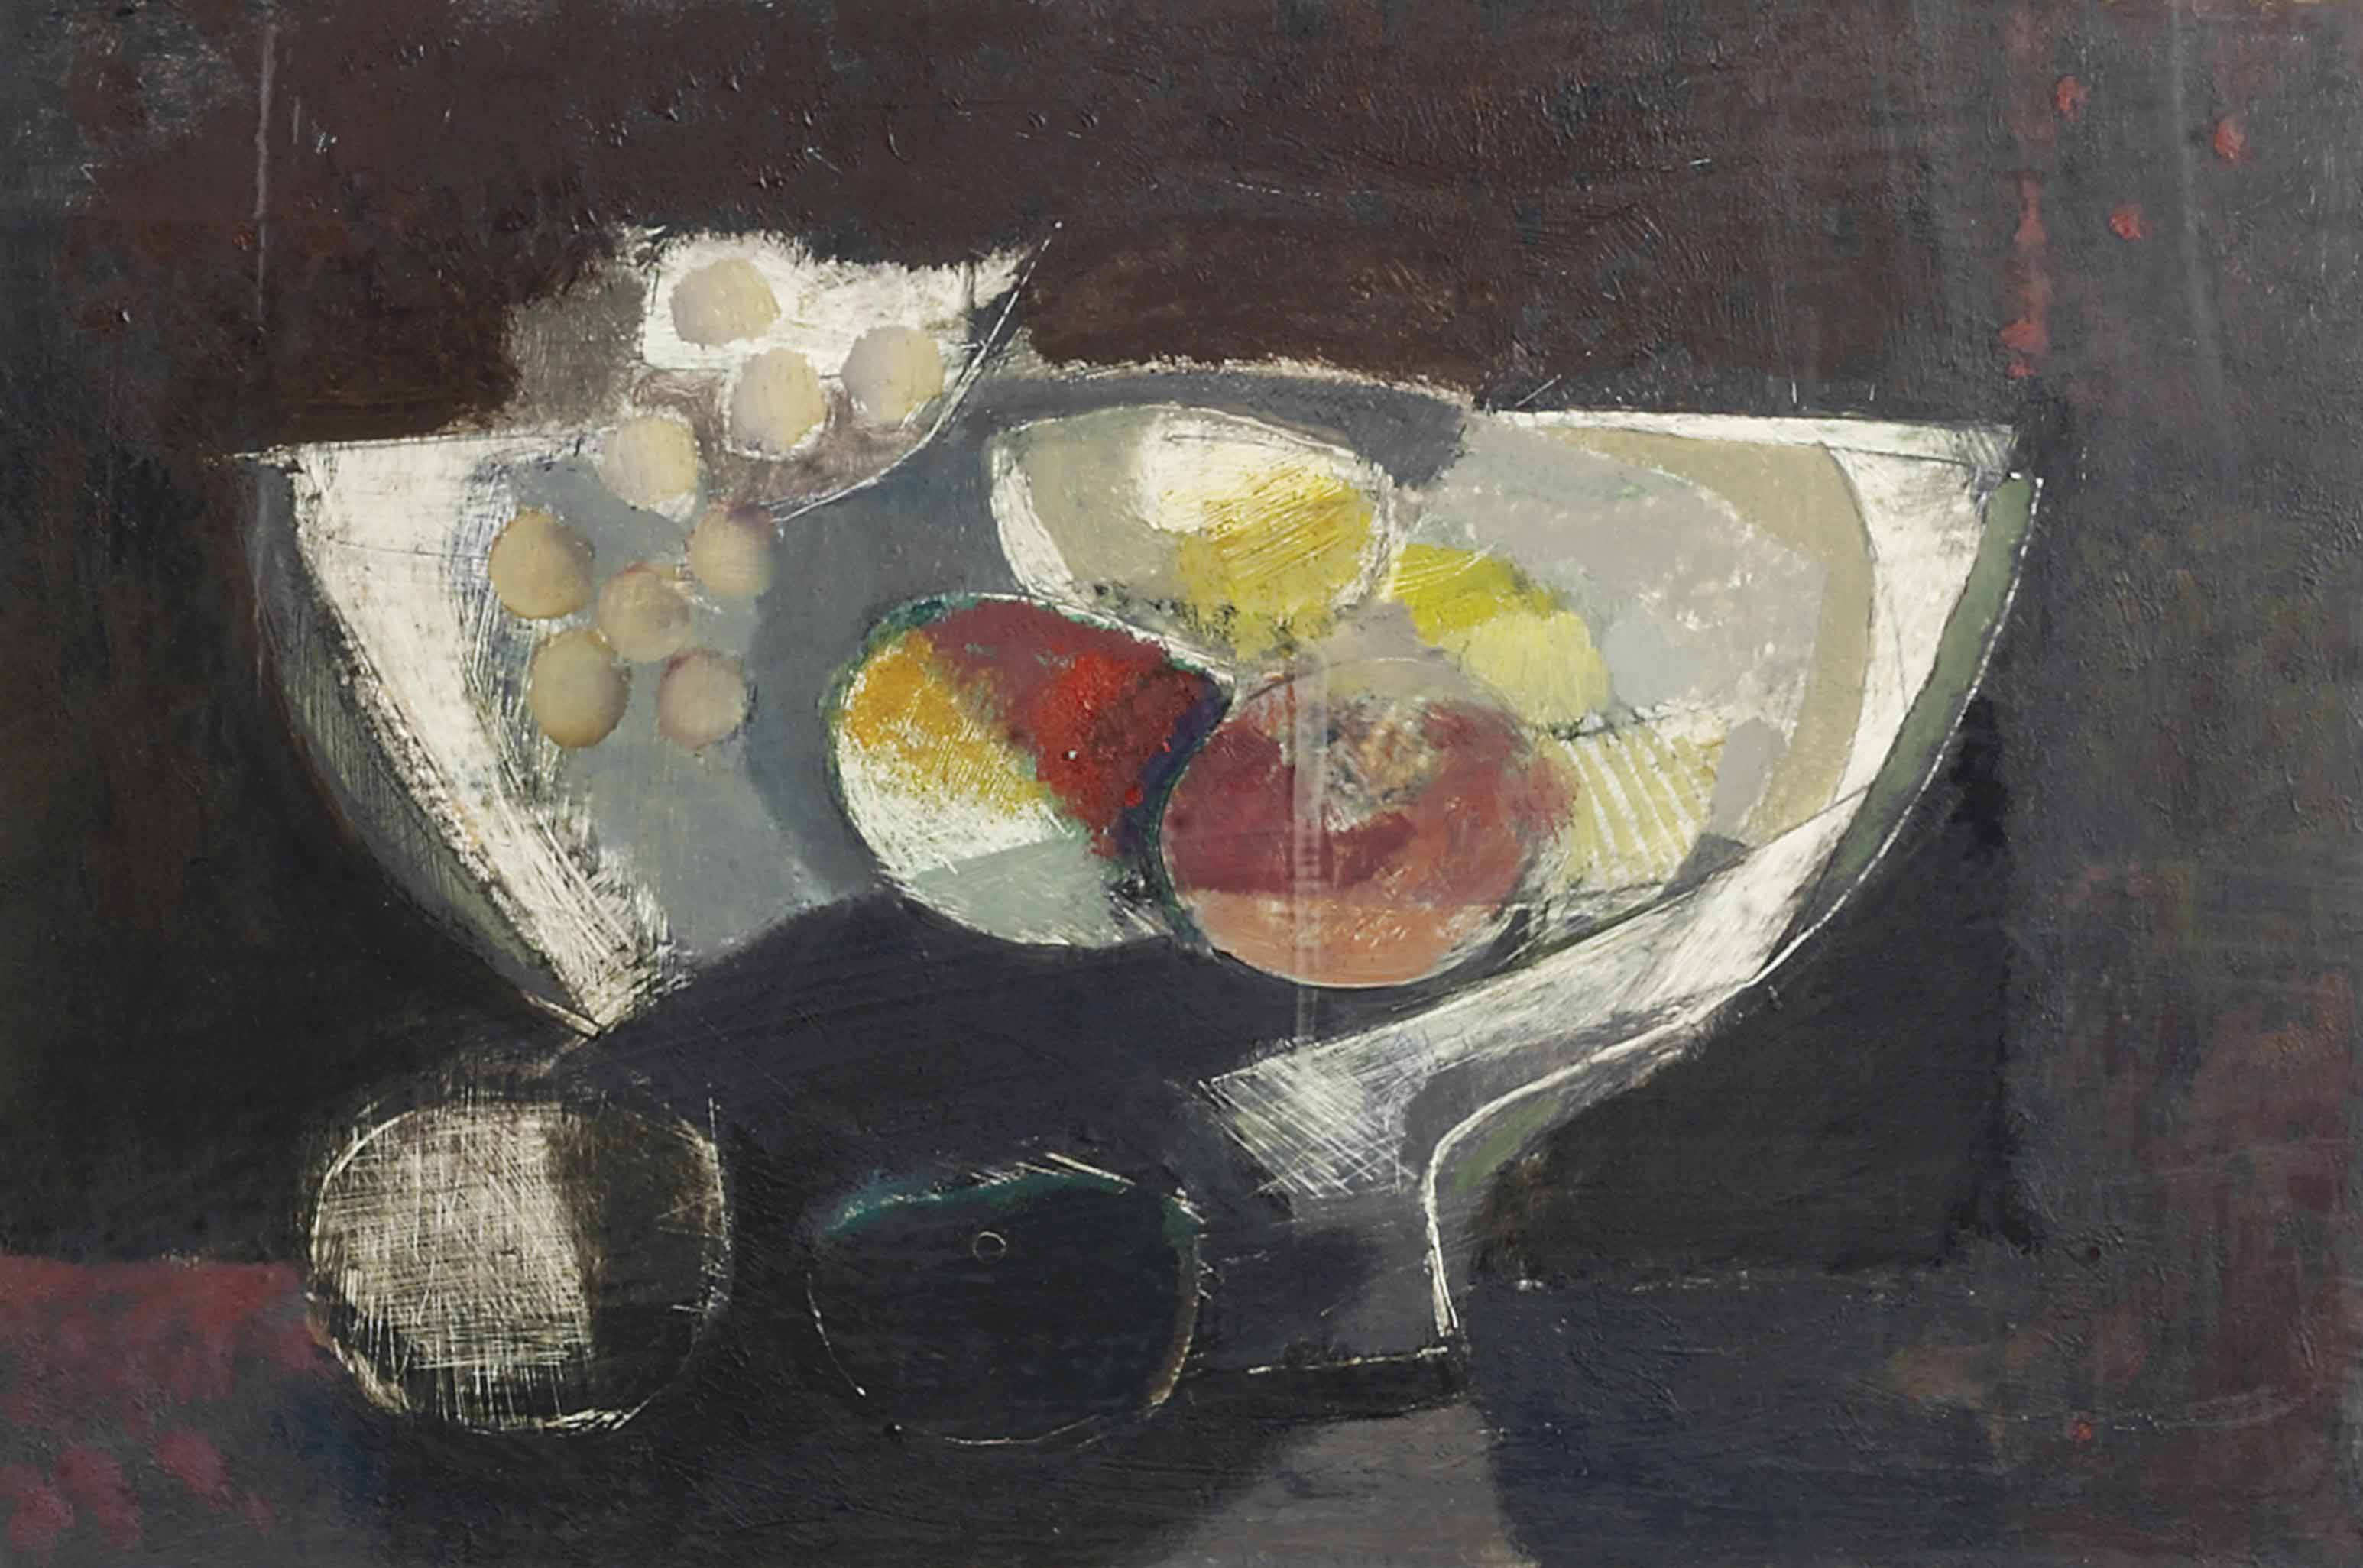 Still life on a dark background